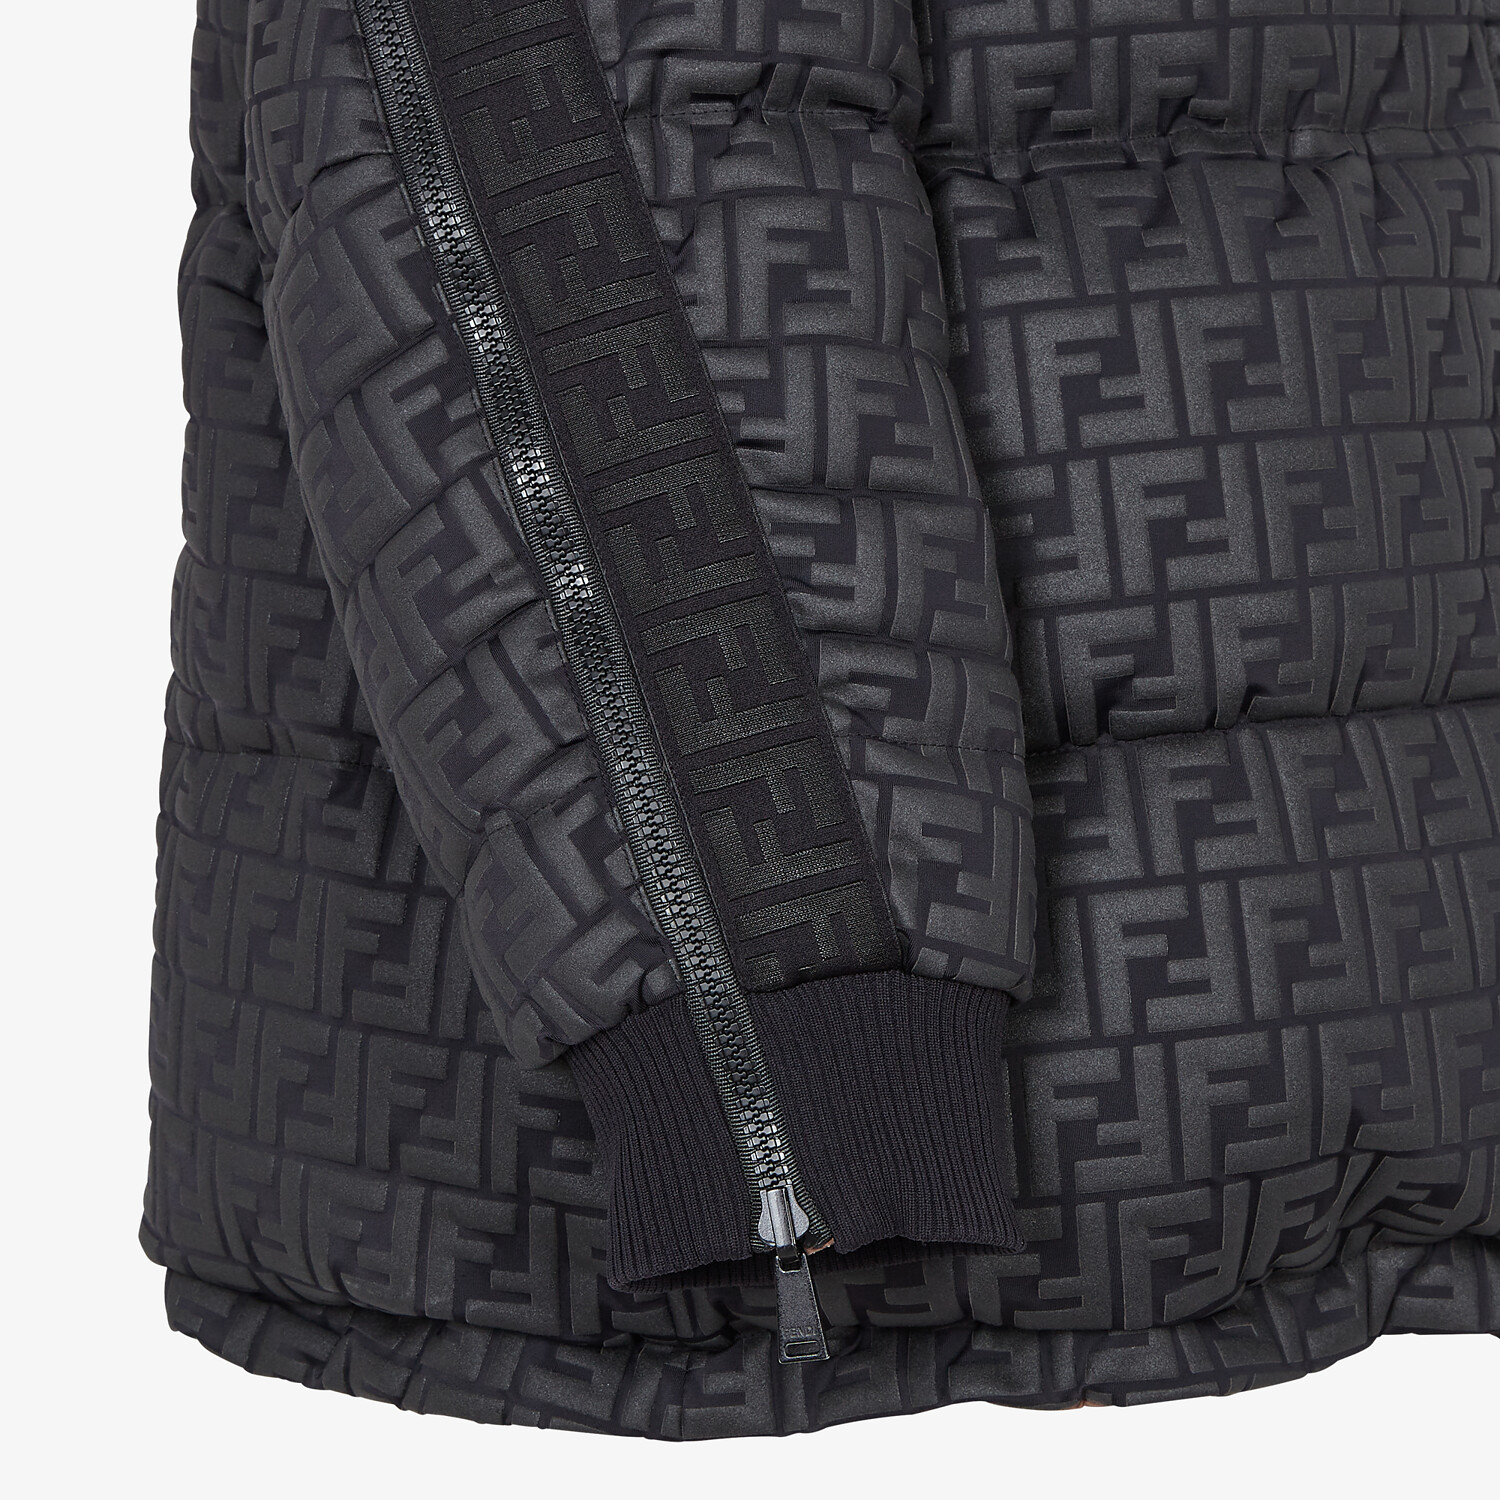 FENDI SKI JACKET - Ski jacket in black nylon - view 3 detail